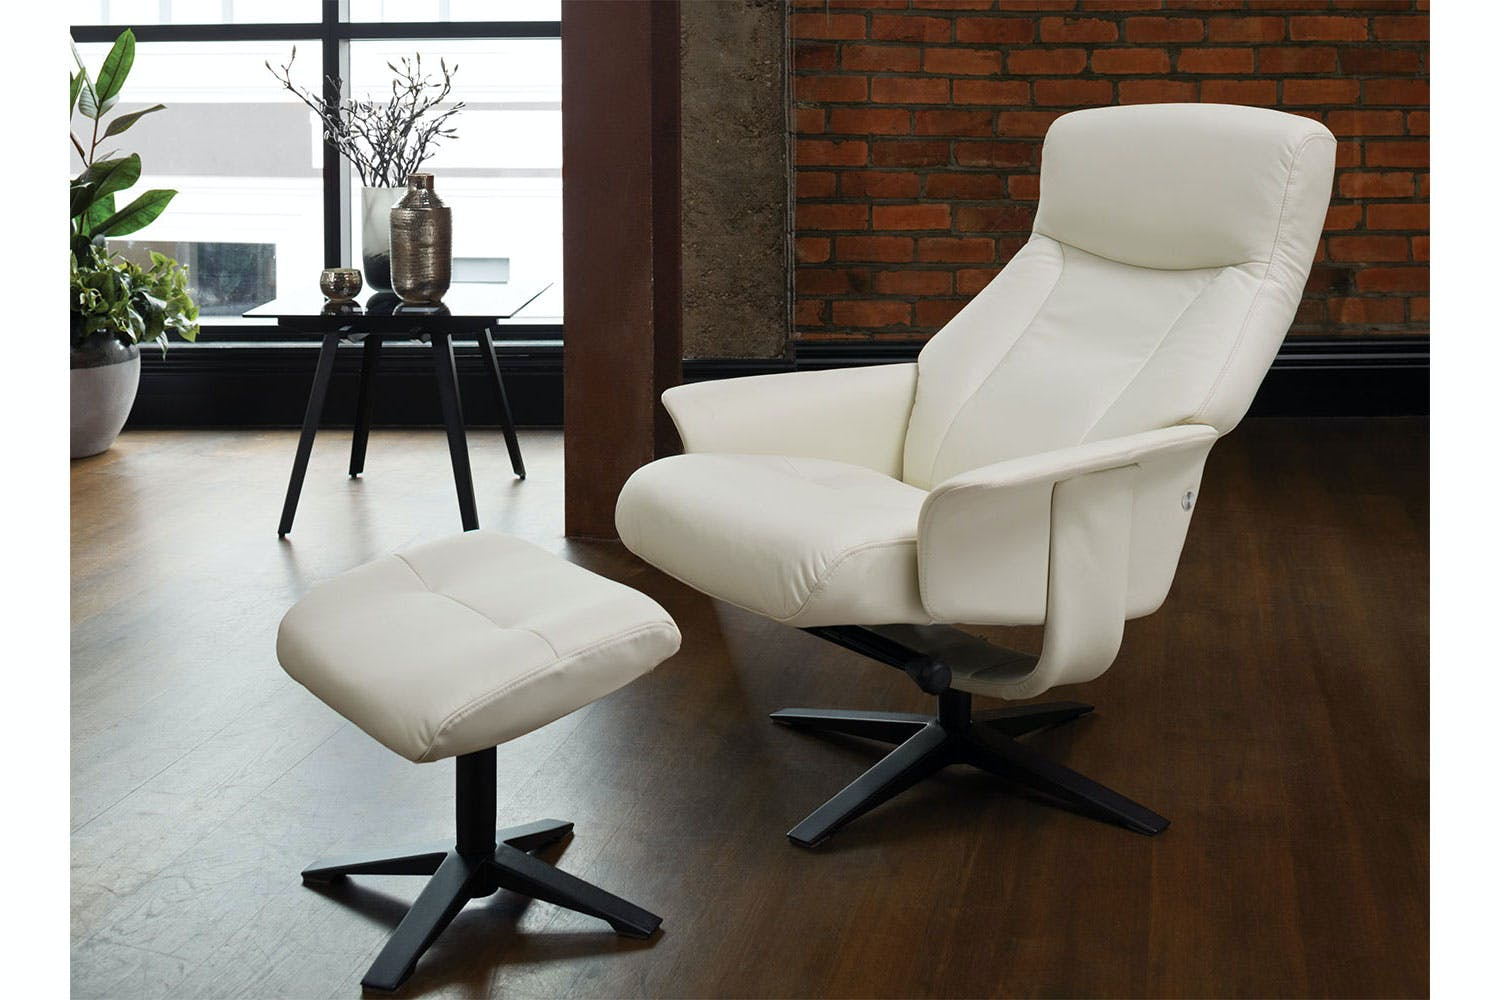 Chena Leather Recliner Chair and Footstool by Debonaire Furniture